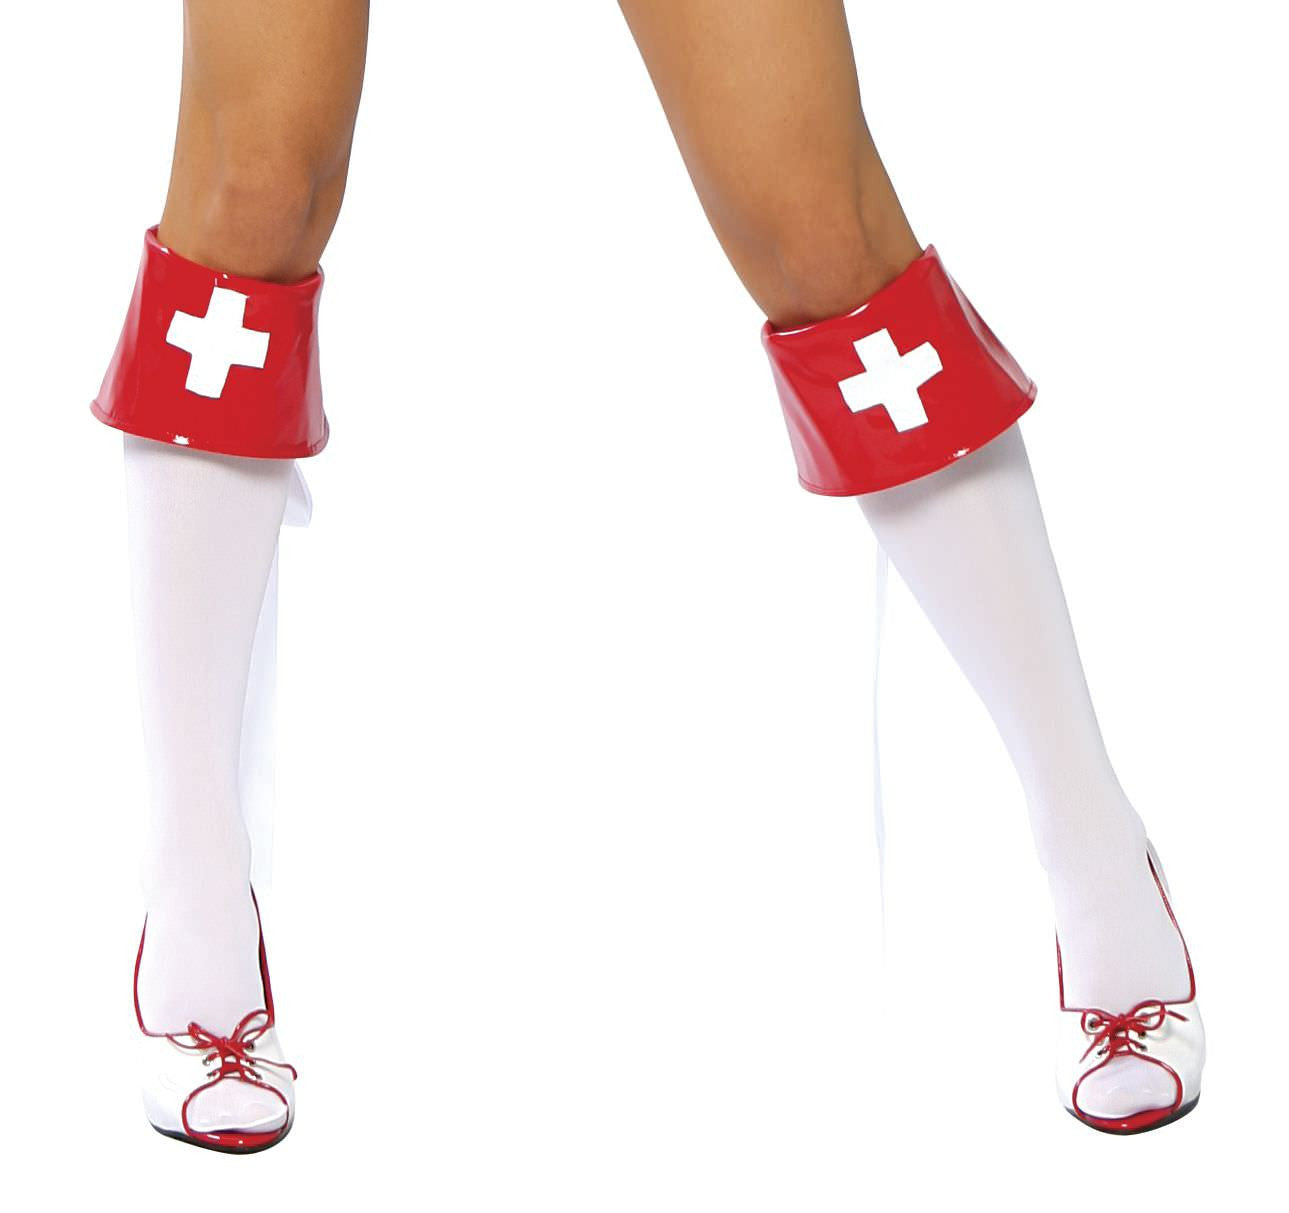 4007B - Red and White Boot Cuffs ${description} | Roma Costume and Roma Confidential wholesale manufacturer of Women Apparel bulk world wide wholesale and world wide drop ship services for Adult Halloween Costumes, Sexy and Elegant Lingerie, Rave Clothing, Club wear, and Christmas Costumes. Accessories, Roma Costume, Inc., Roma Costume, Roma Confidential, Wholesale clothing, drop ship, drop ship service, Wholesale Lingerie, Wholesale Adult Halloween Costumes, Rave Clothing, EDM Clothing, Festival Wear, Christmas Costumes, Clubwear, Club wear.